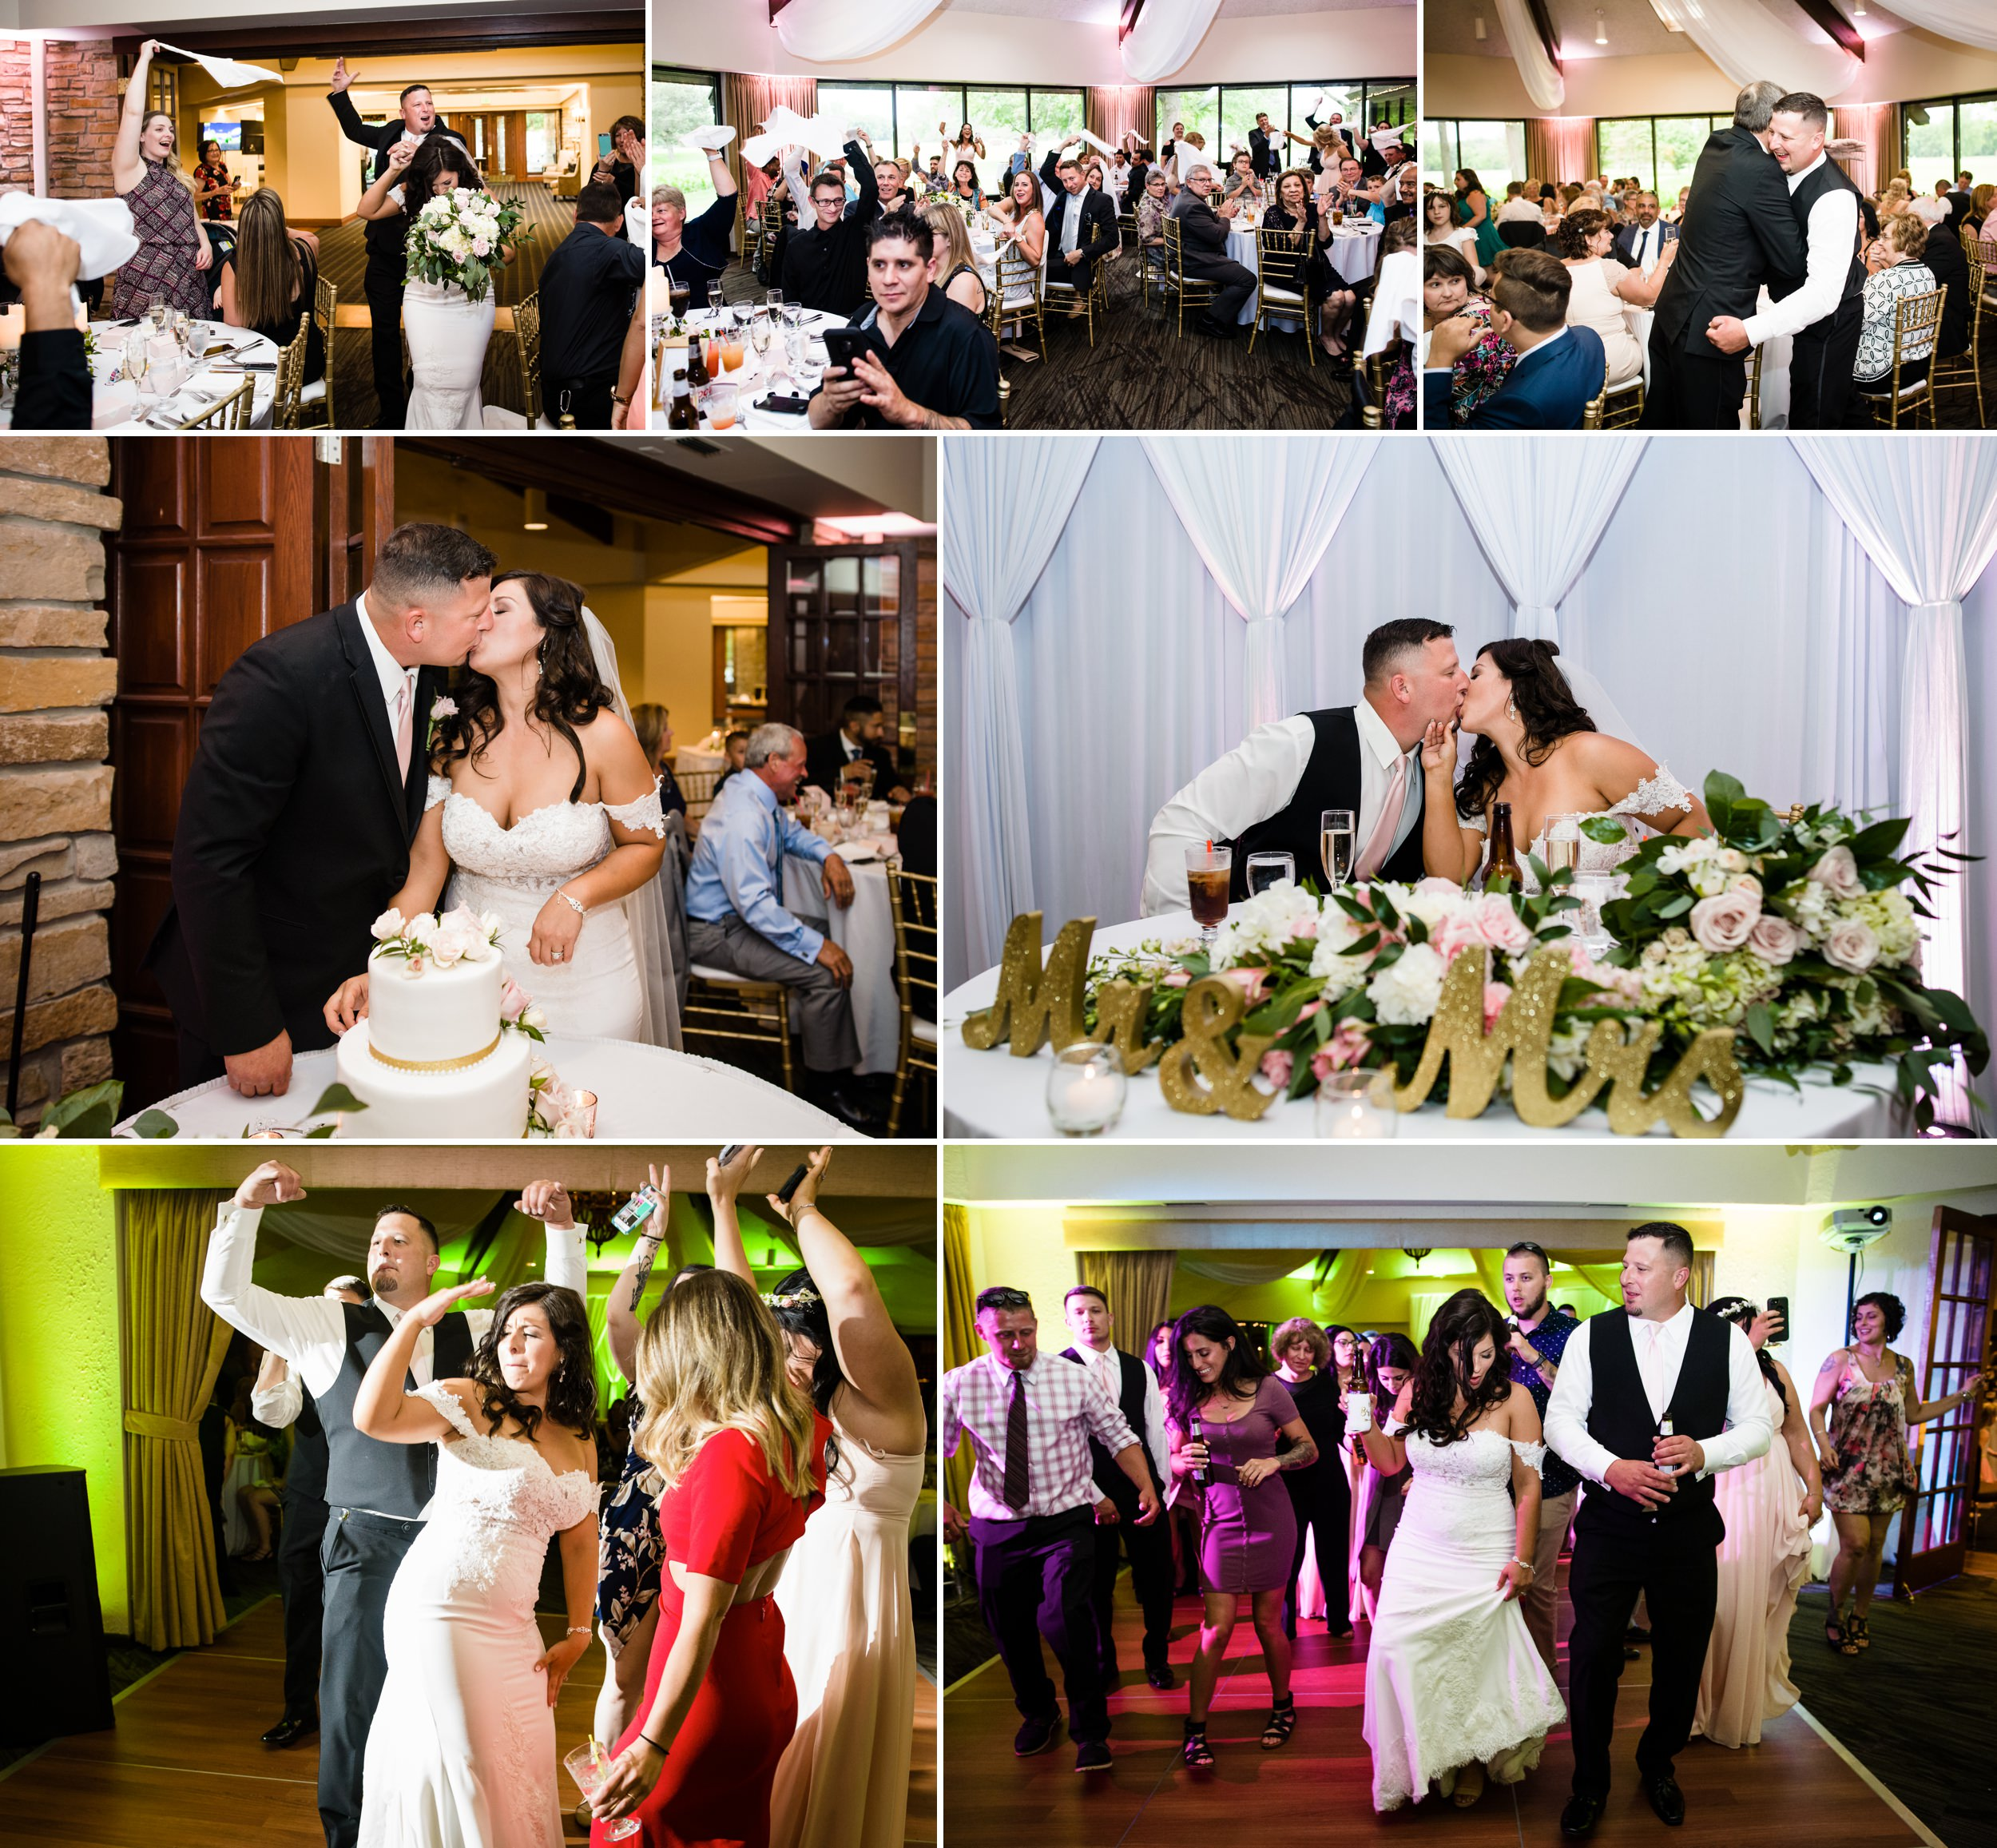 A rousing introduction for the bride and groom at their Briar Ridge wedding reception.